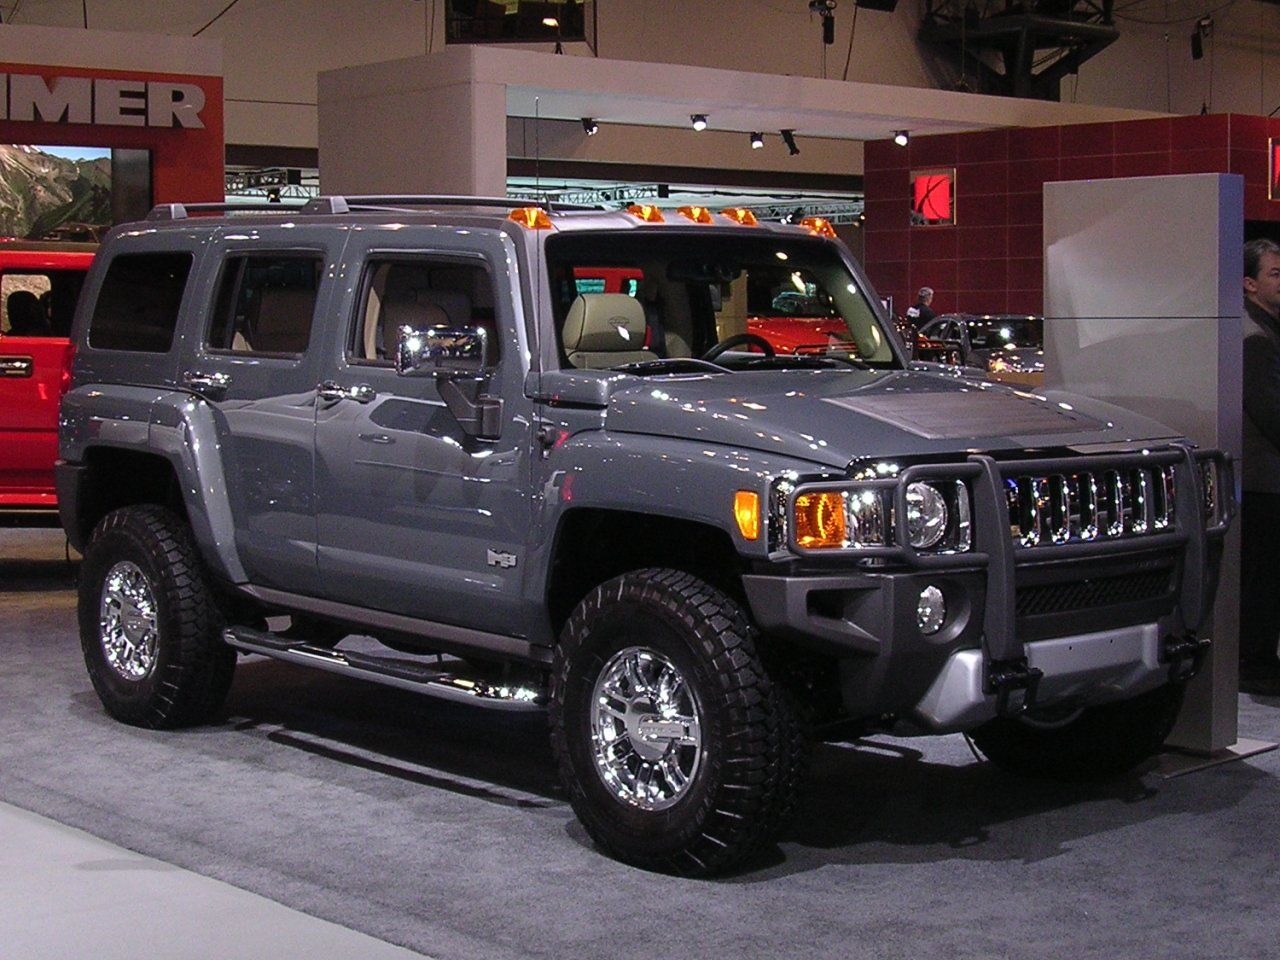 The H3 Is Smallest Of Three Hummer Models And Though Concept Car Was A Pickup Truck Final Vehicle Conventional Suv